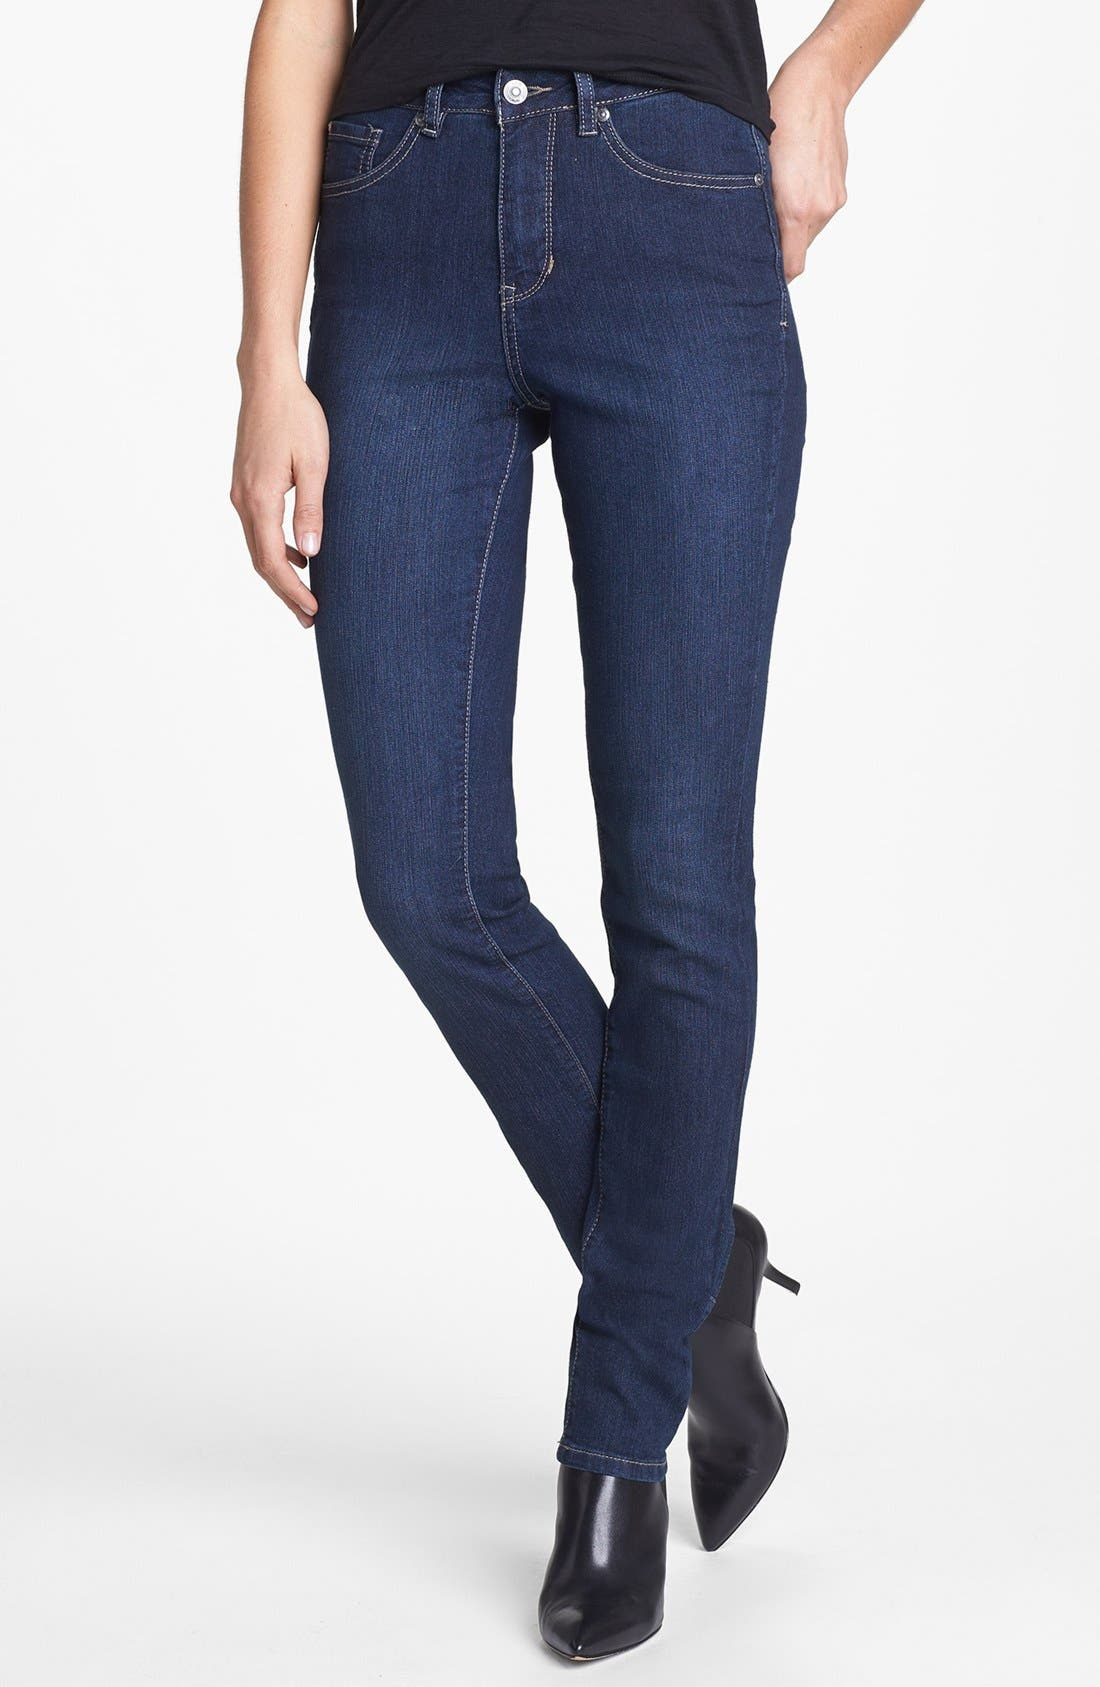 Alternate Image 1 Selected - Jag Jeans 'Holly' Slim Fit Jeans (Blue Shadow)